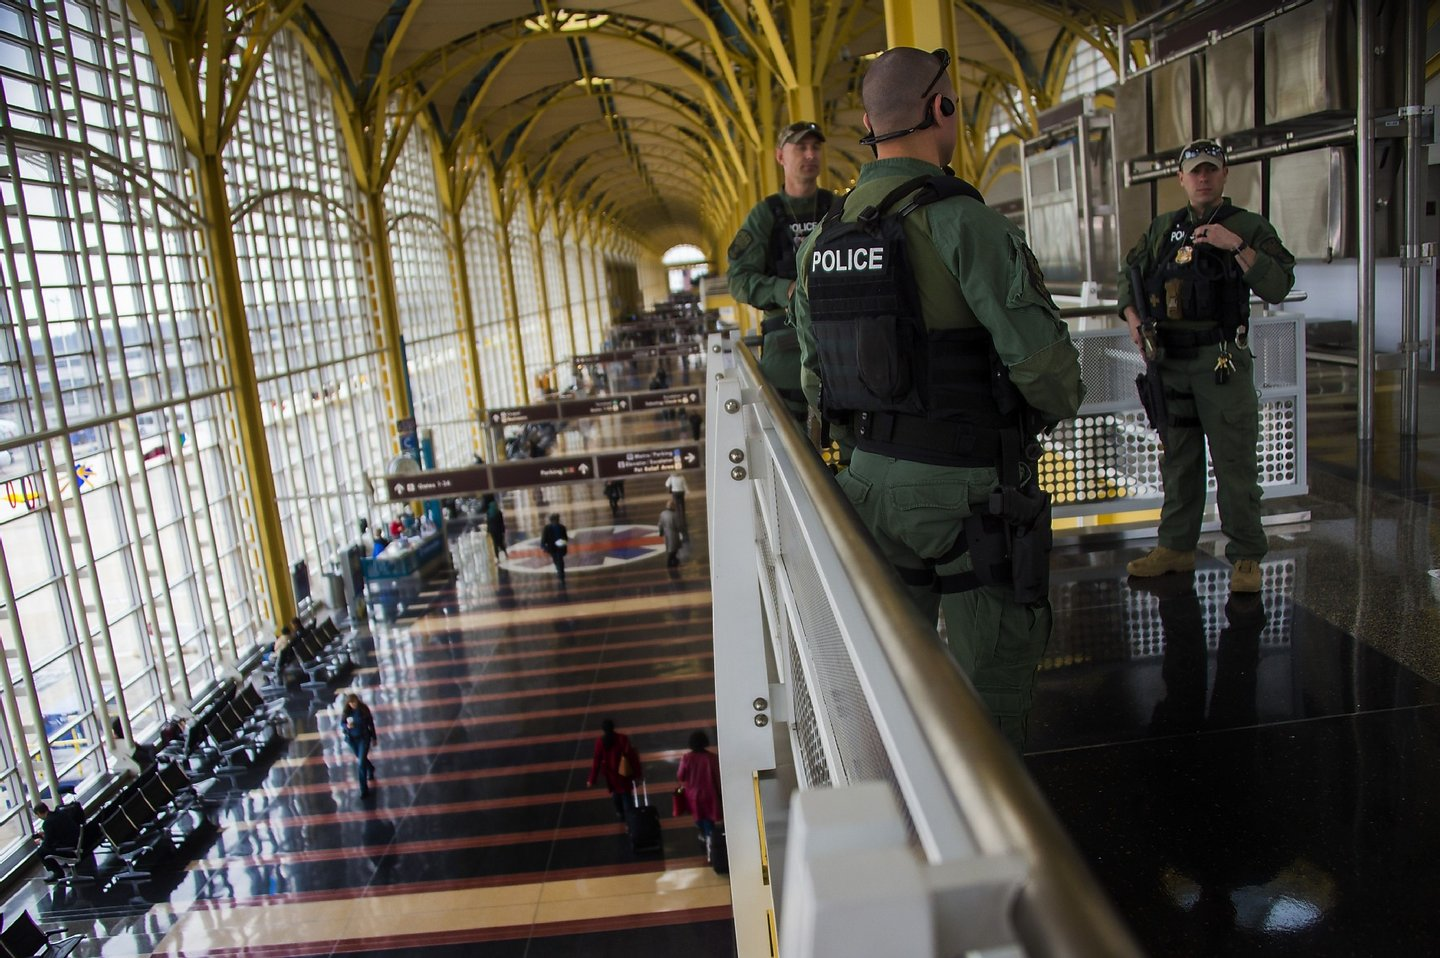 Heavily armed police patrol Ronald Reagan Washington National Airport in Arlington, Virginia, March 22, 2016. New York and Washington stepped up security in the wake of the attacks in Brussels on March 22, deploying counter-terrorism reinforcements and the National Guard to airports and stations, officials said. / AFP / Jim Watson (Photo credit should read JIM WATSON/AFP/Getty Images)